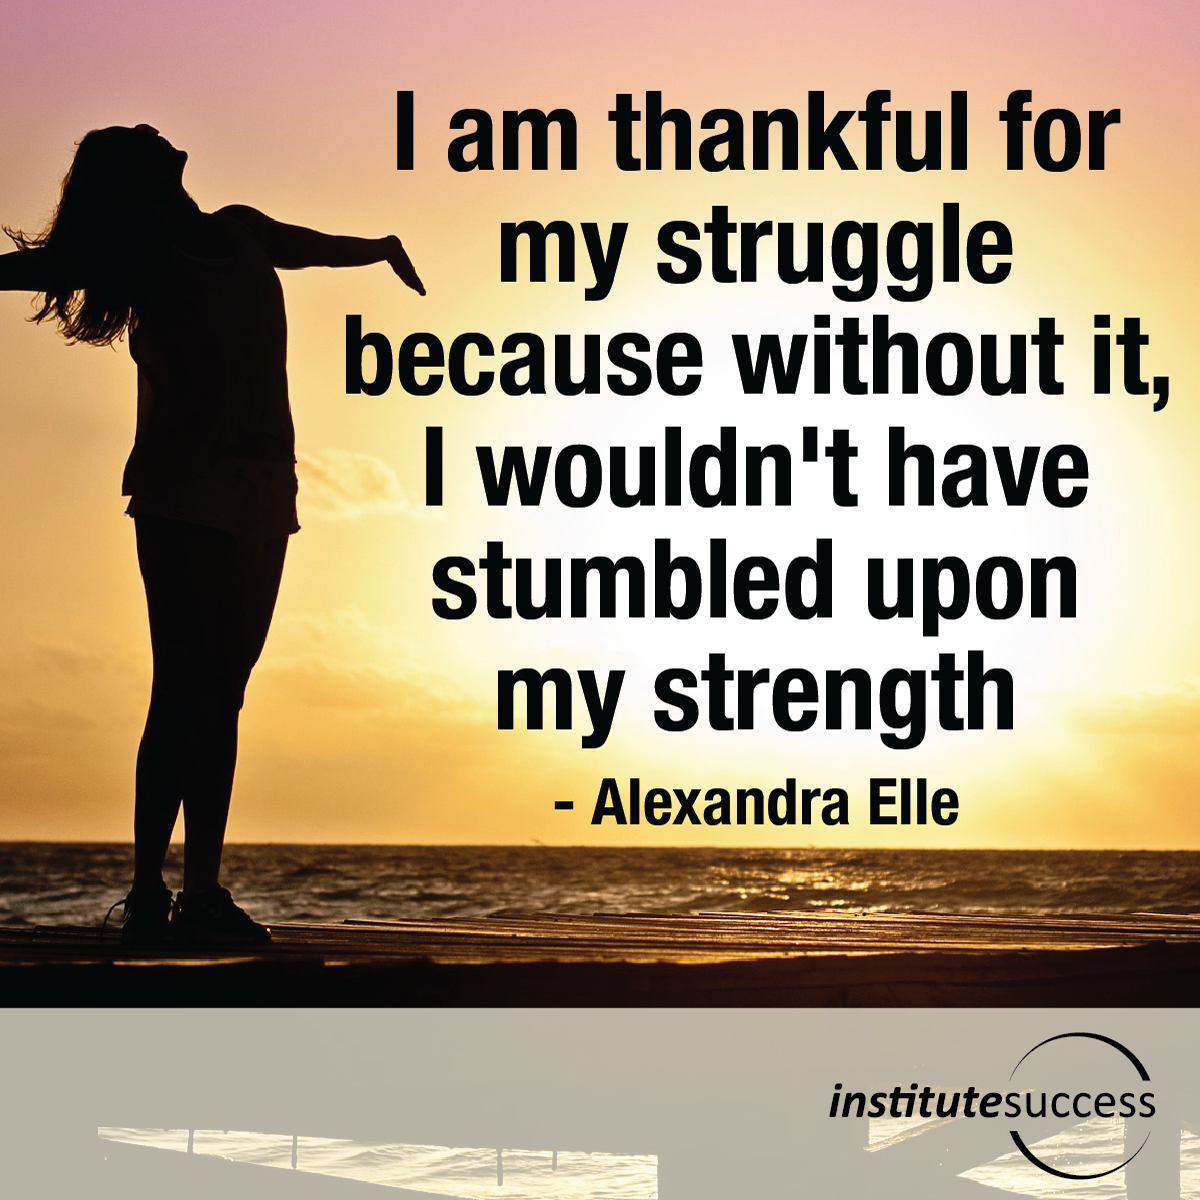 I am thankful for my struggle because without it, I wouldn't have stumbled upon my strength – Alexandra Elle